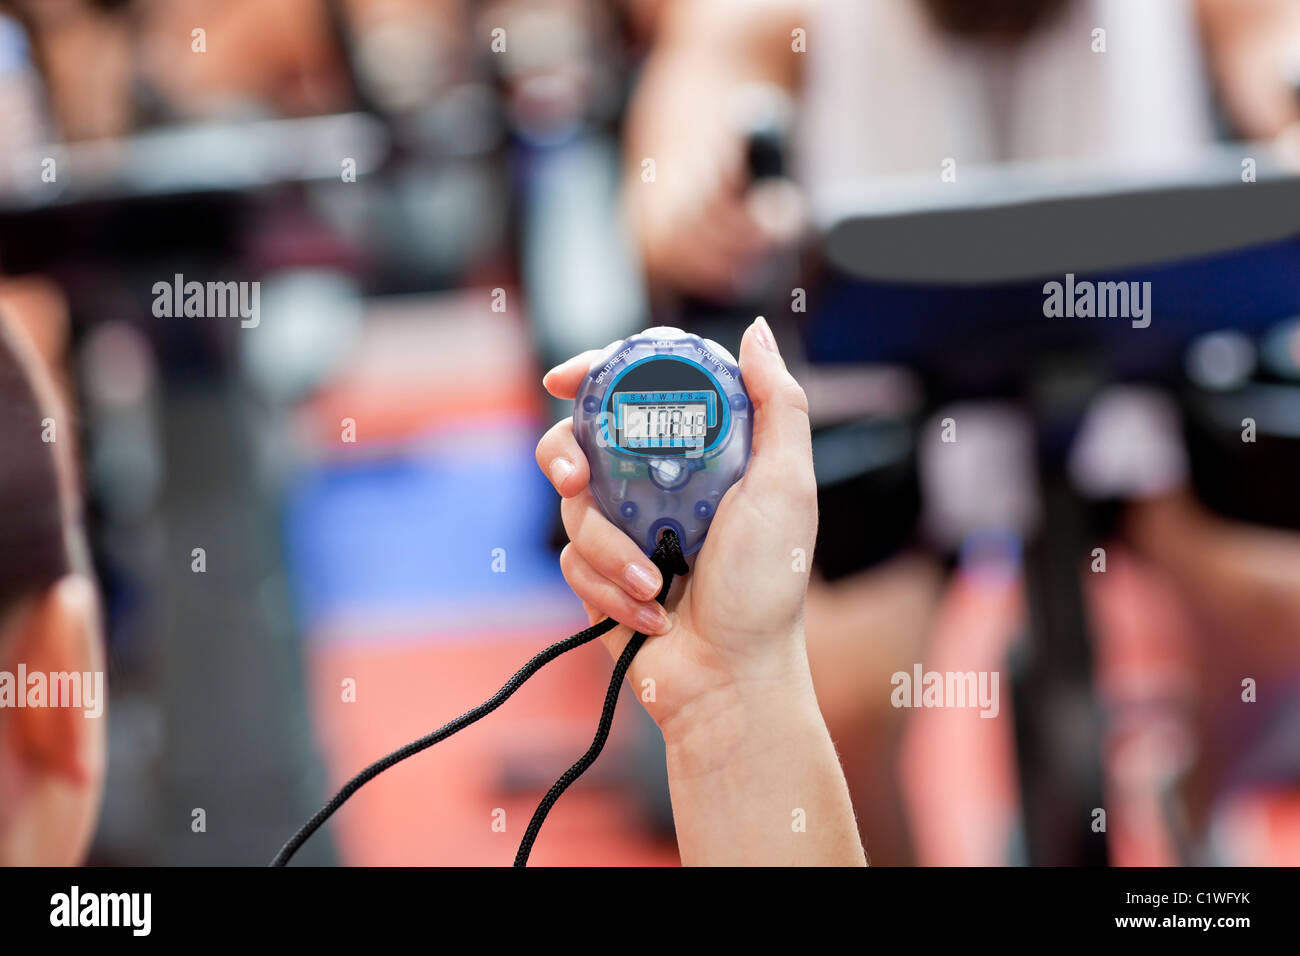 Close-up of a chronometer holding by a female coach in a sport centre - Stock Image